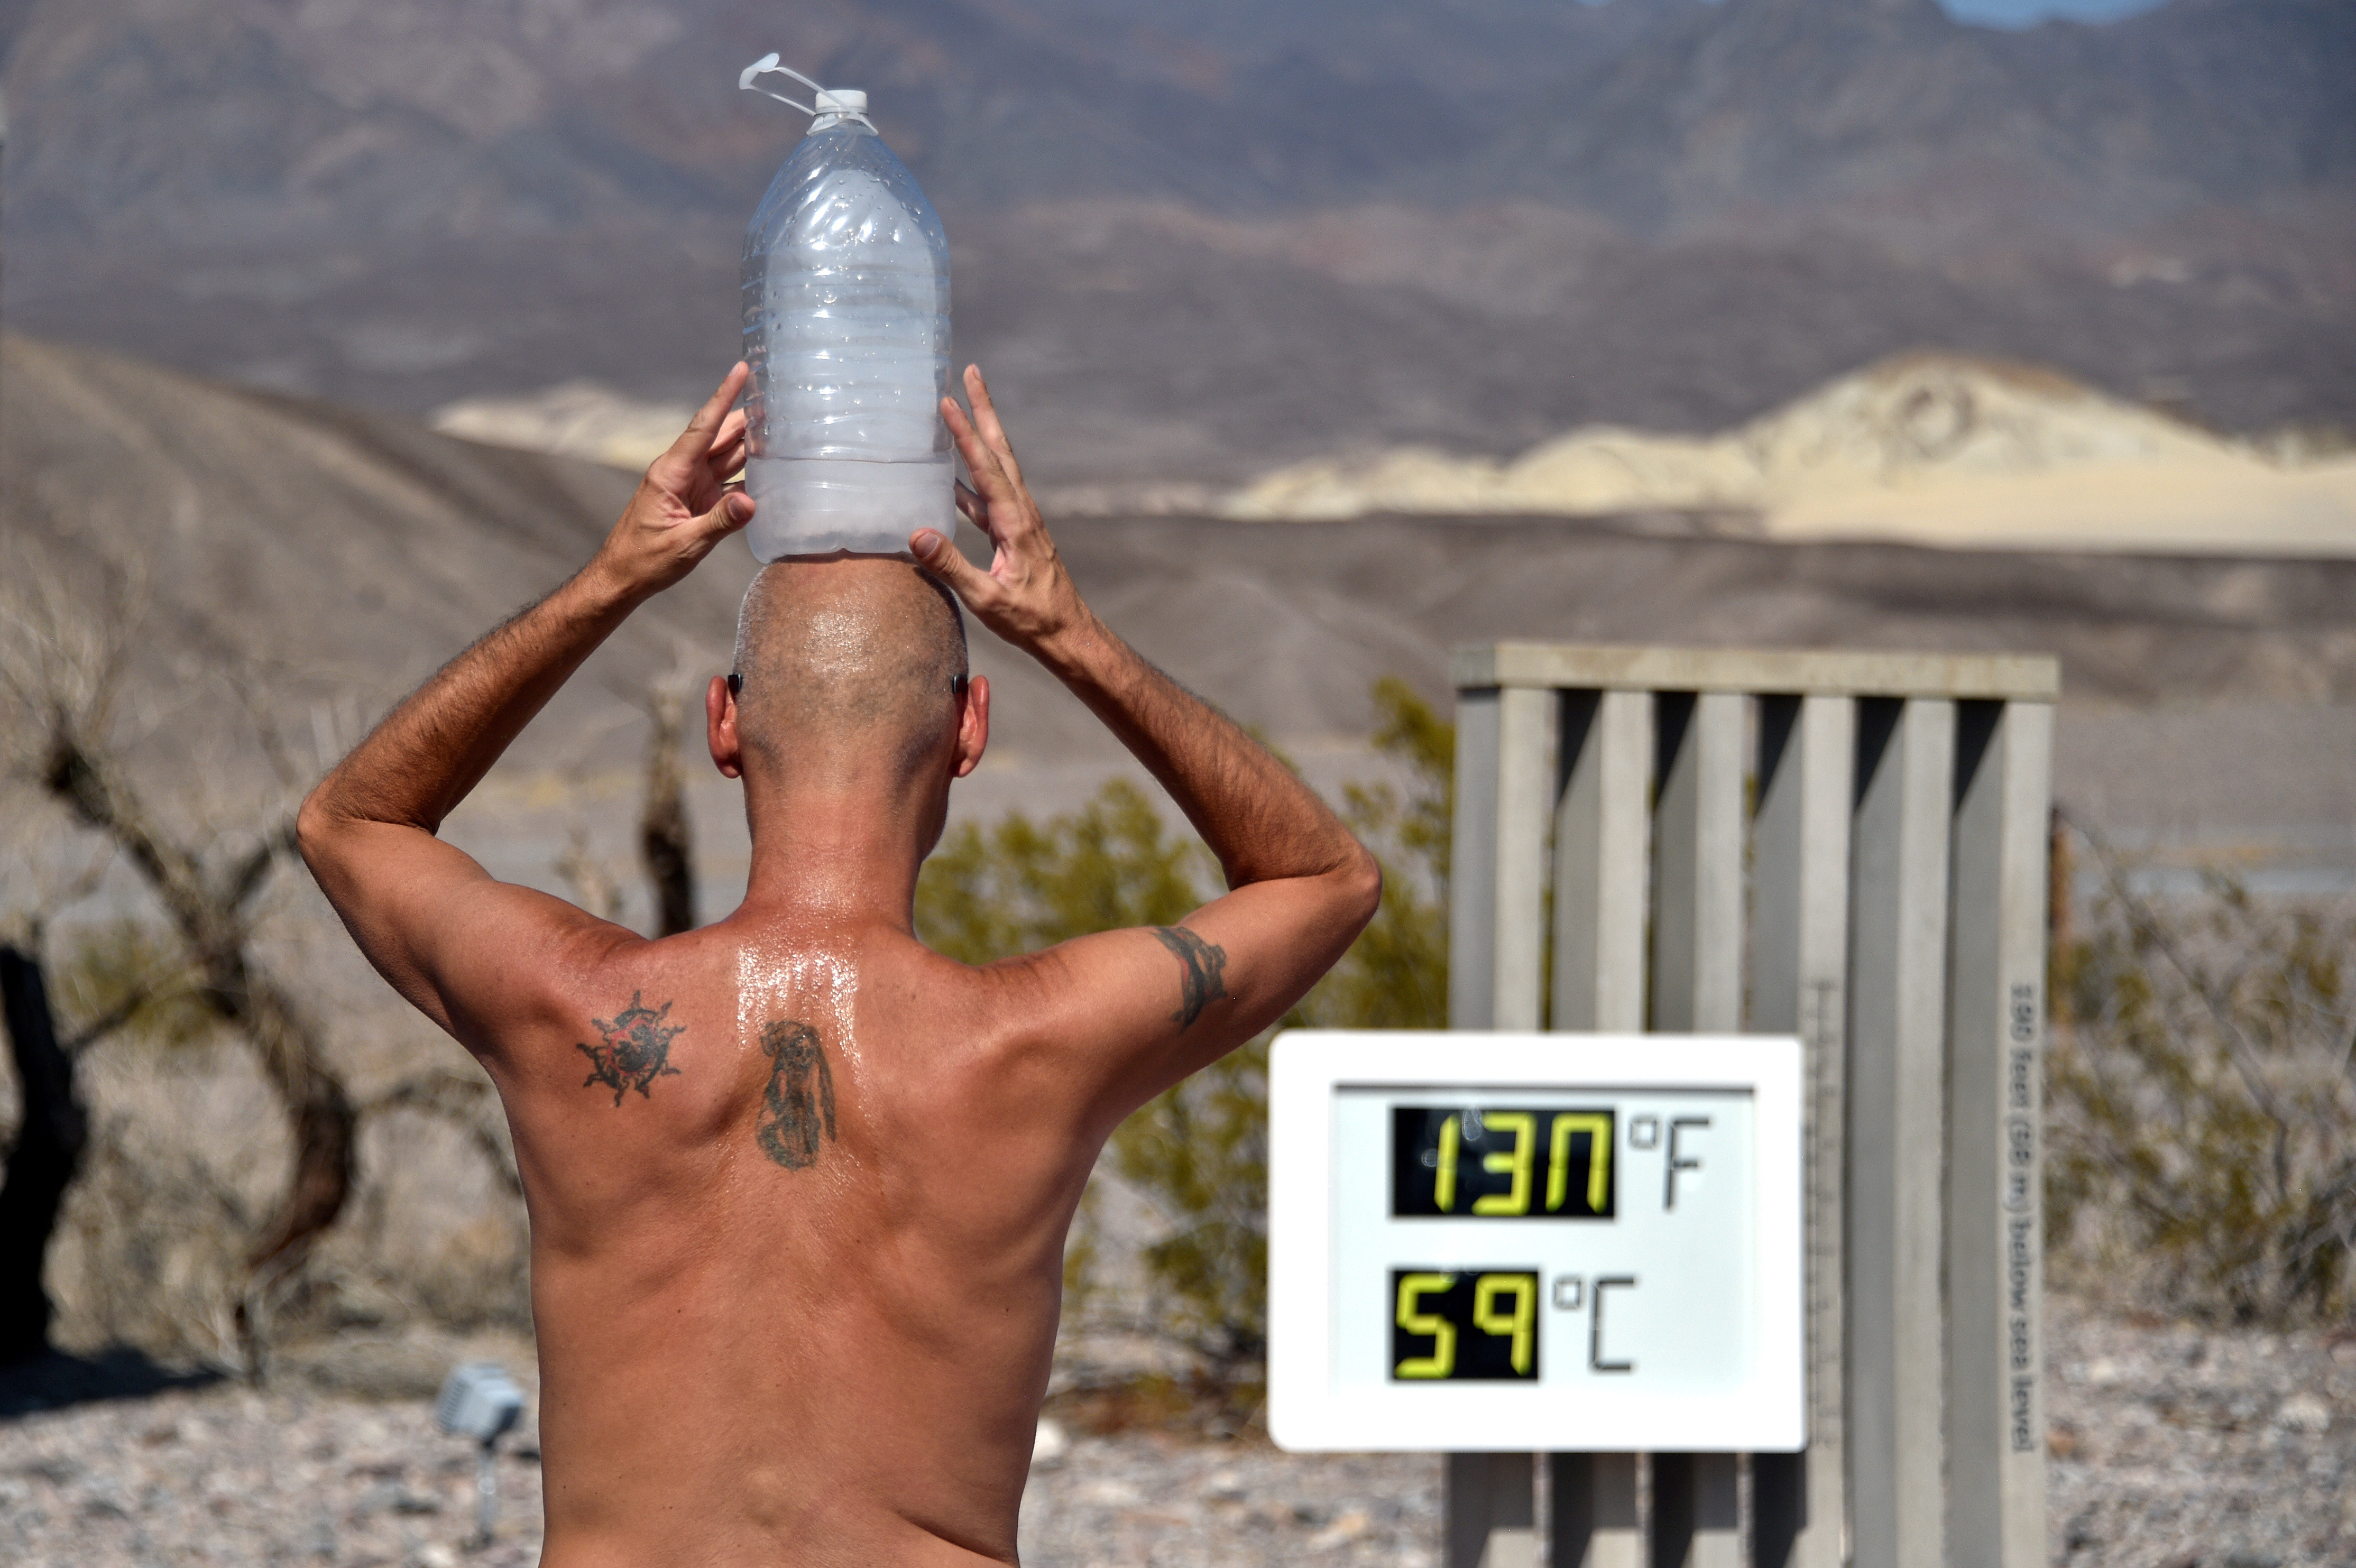 Steve Krofchik of Las Vegas keeps cool with a bottle of ice on his head as the unofficial thermometer reads 130 degrees Fahrenheit (54.4 Celsius), with a mechanical fault on the display which causes the numbers to render incorrectly, at the Furnace Creek Visitors Center in Death Valley, California, U.S. August 17, 2020. REUTERS/David Becker     TPX IMAGES OF THE DAY - RC20GI9I0D6I